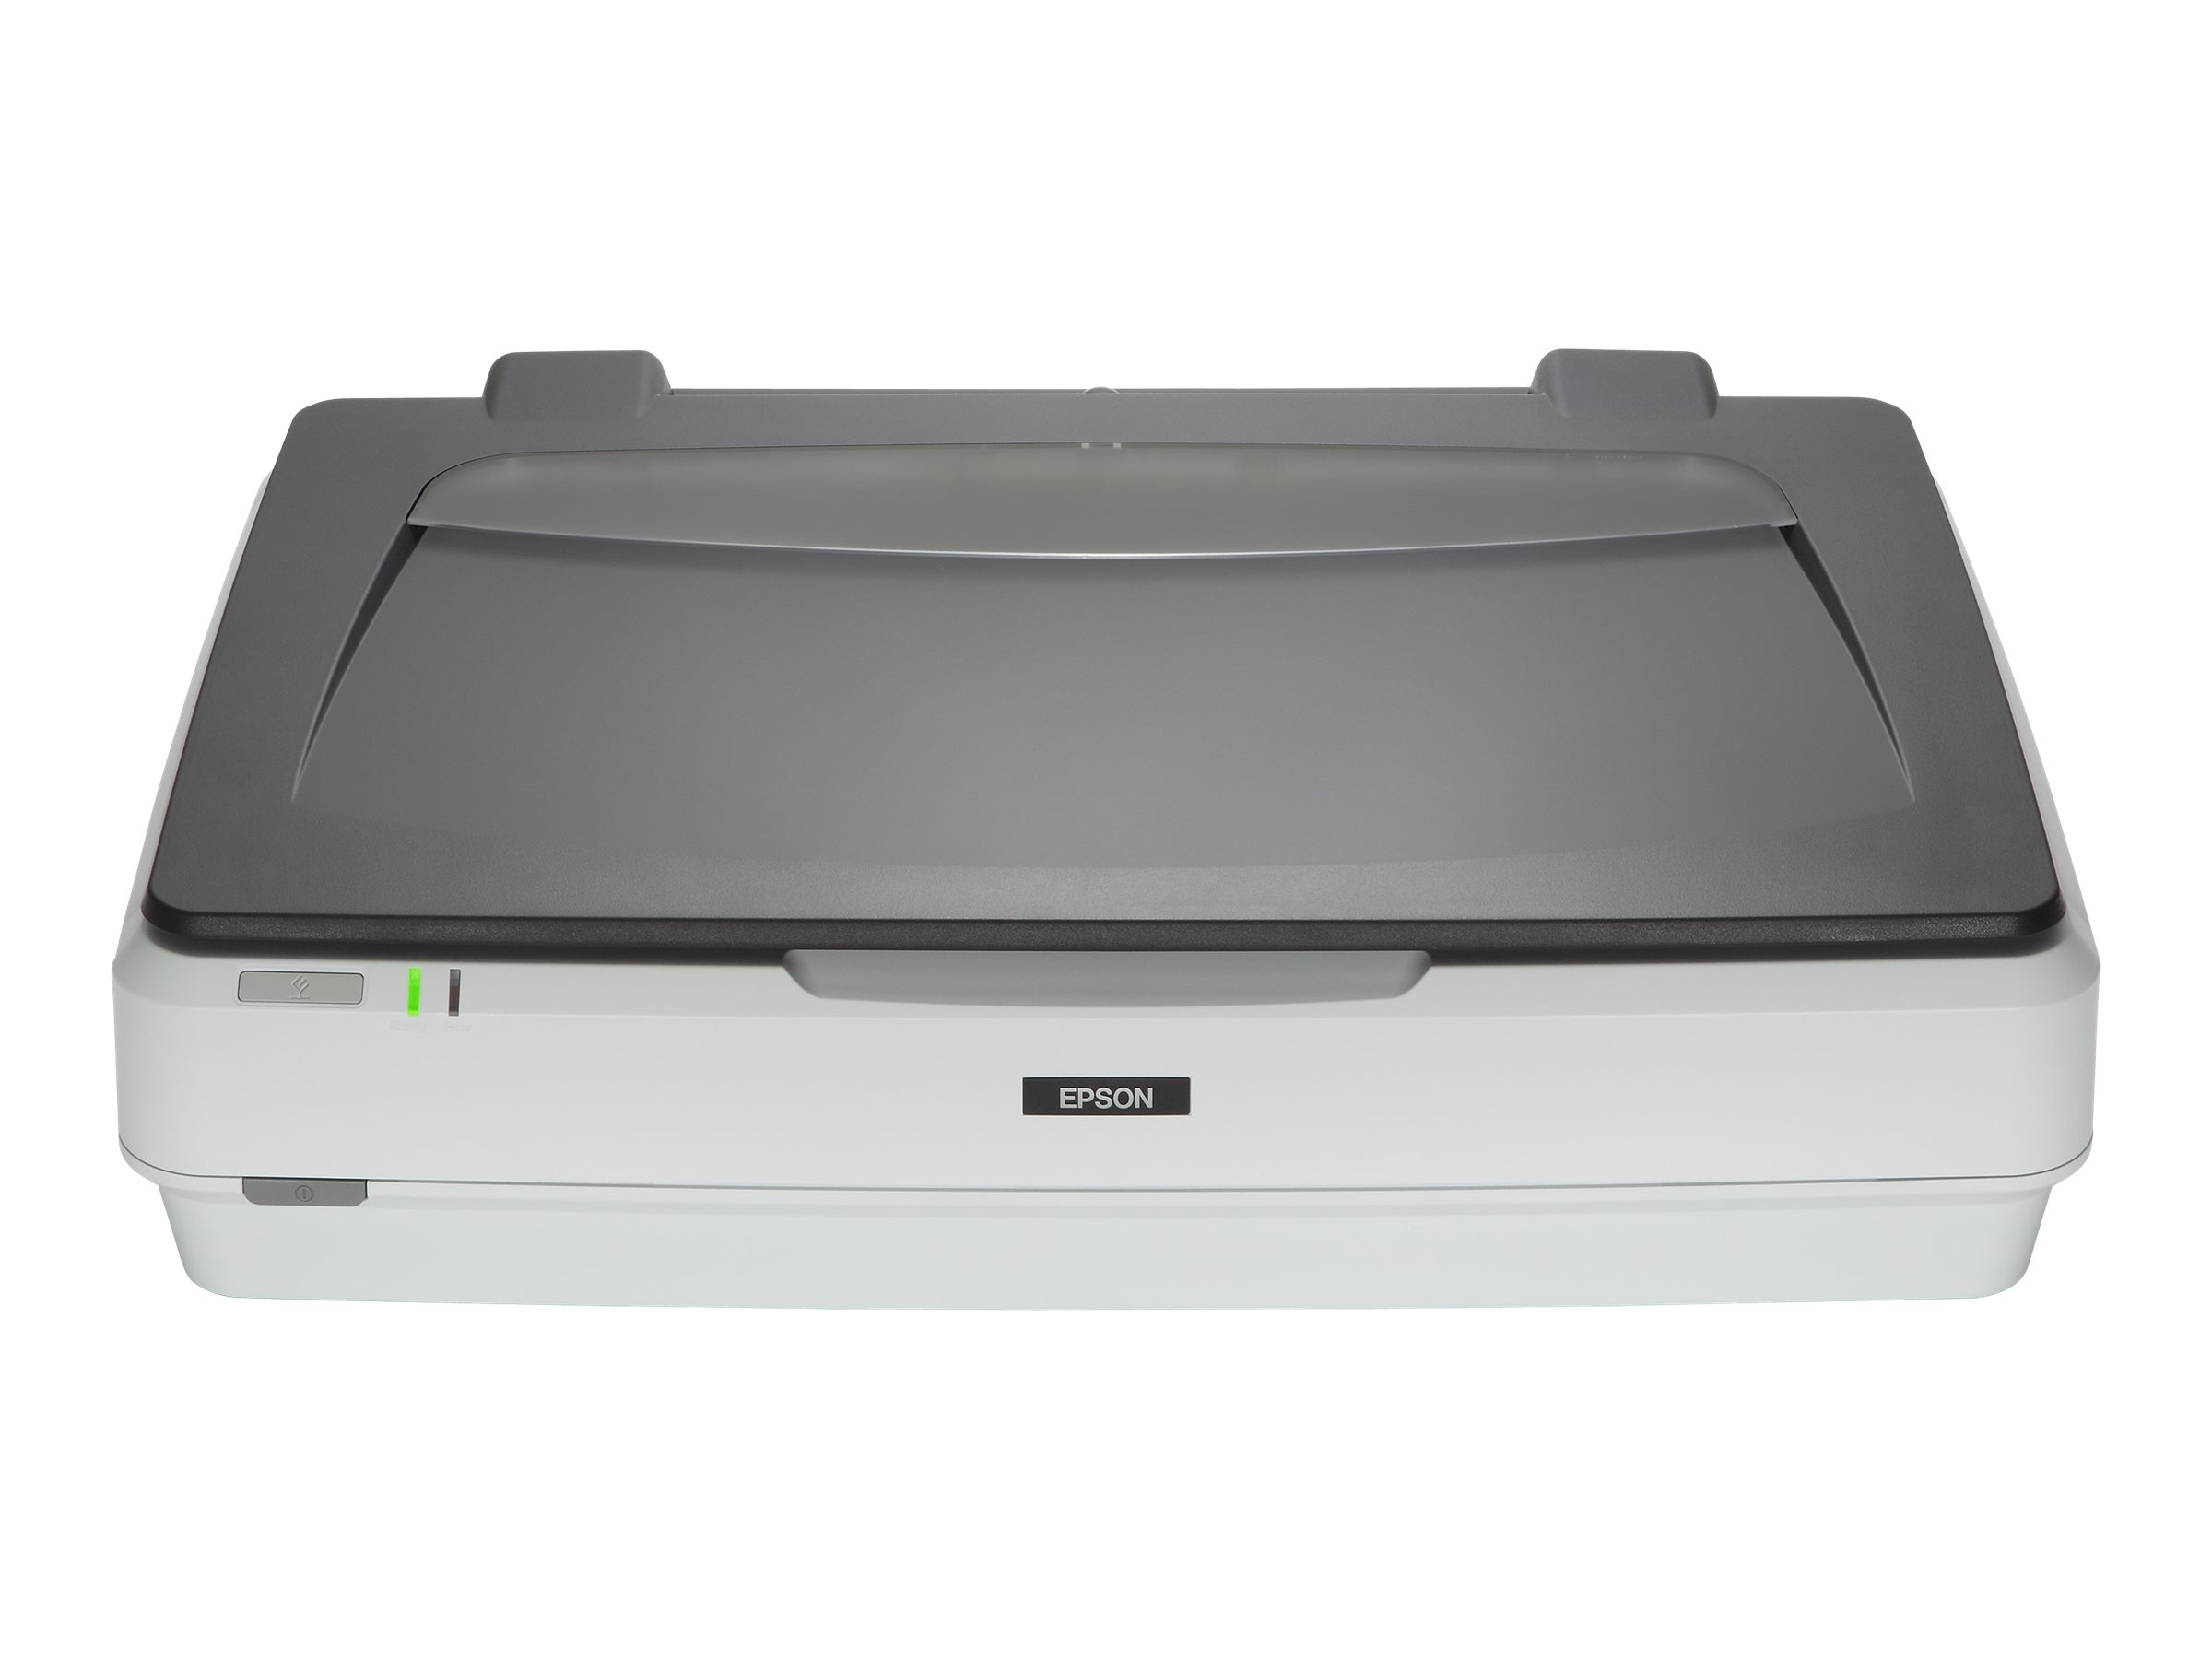 Epson Expression 12000XL - Scanner à plat - A3 - 2400 ppp x 4800 ppp - USB 2.0